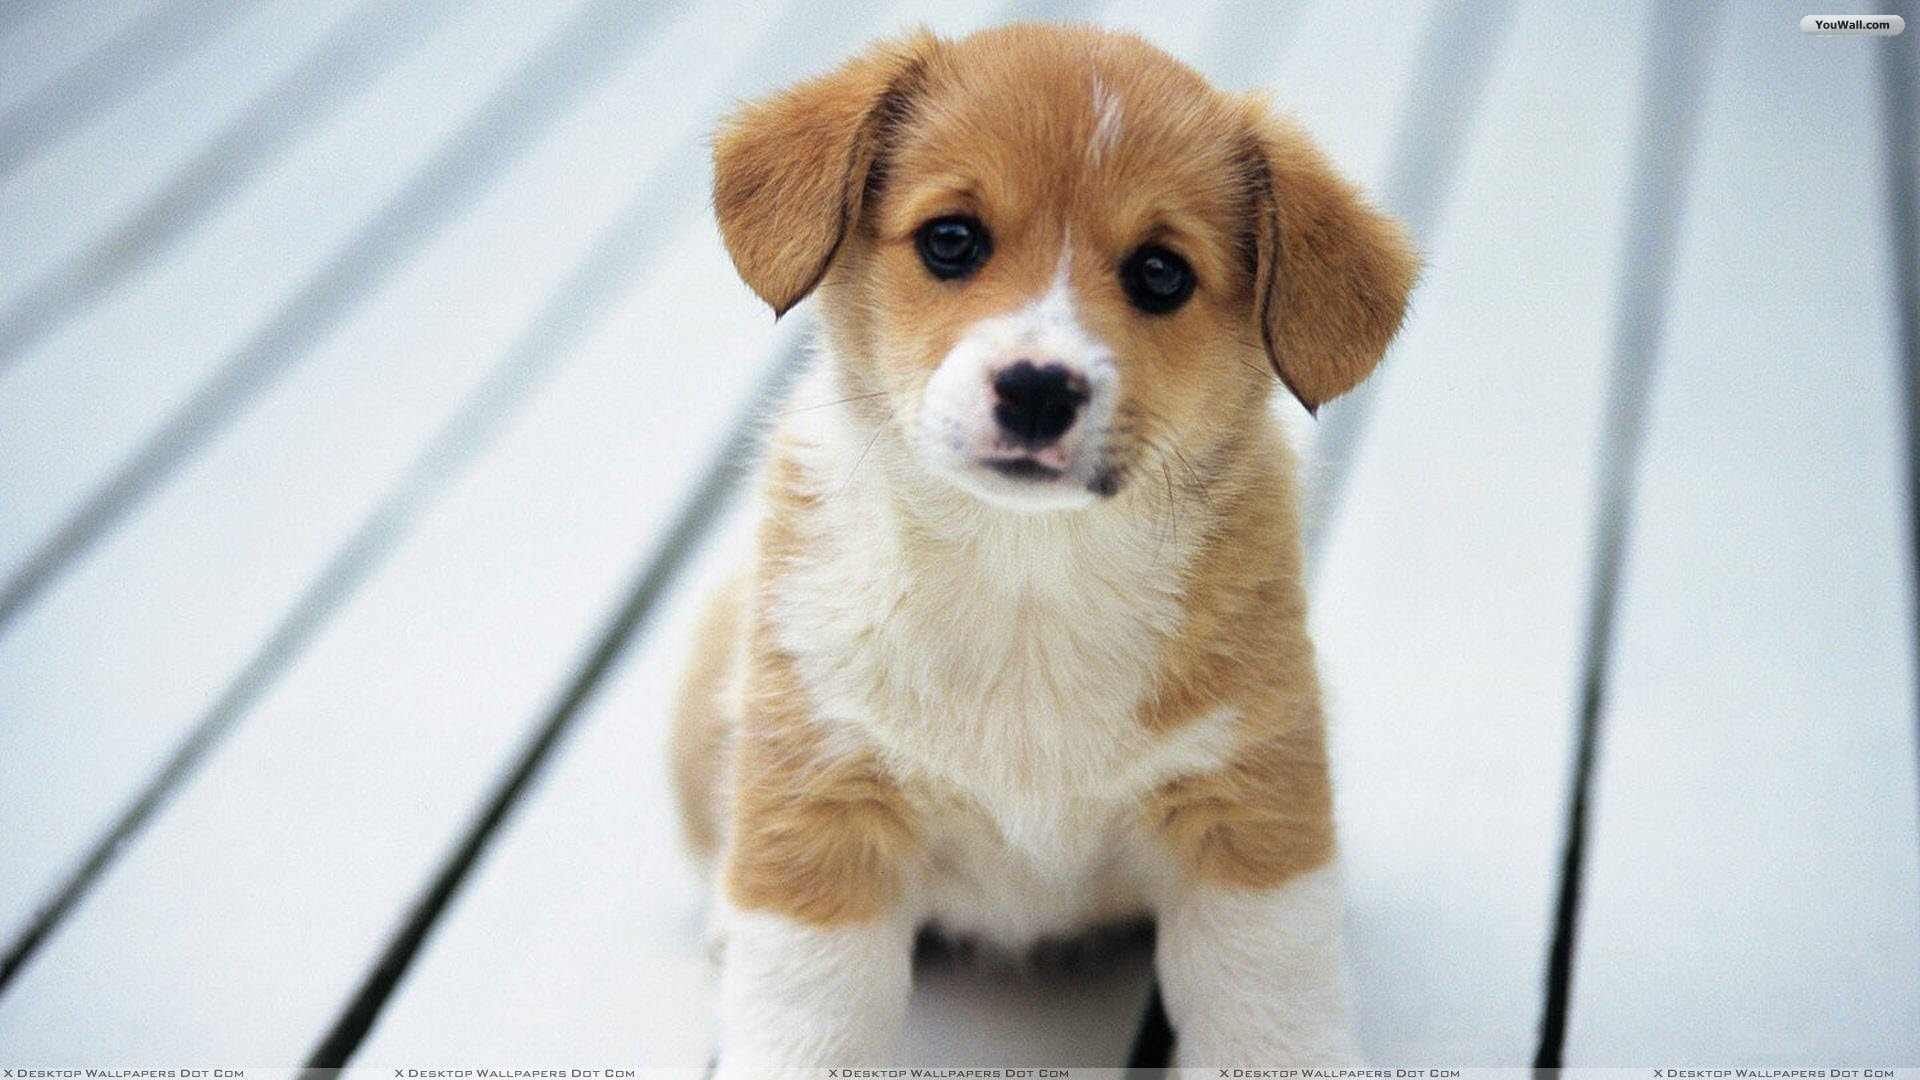 Other Wallpaper Cute Desktop Background For Source Puppy Backgrounds